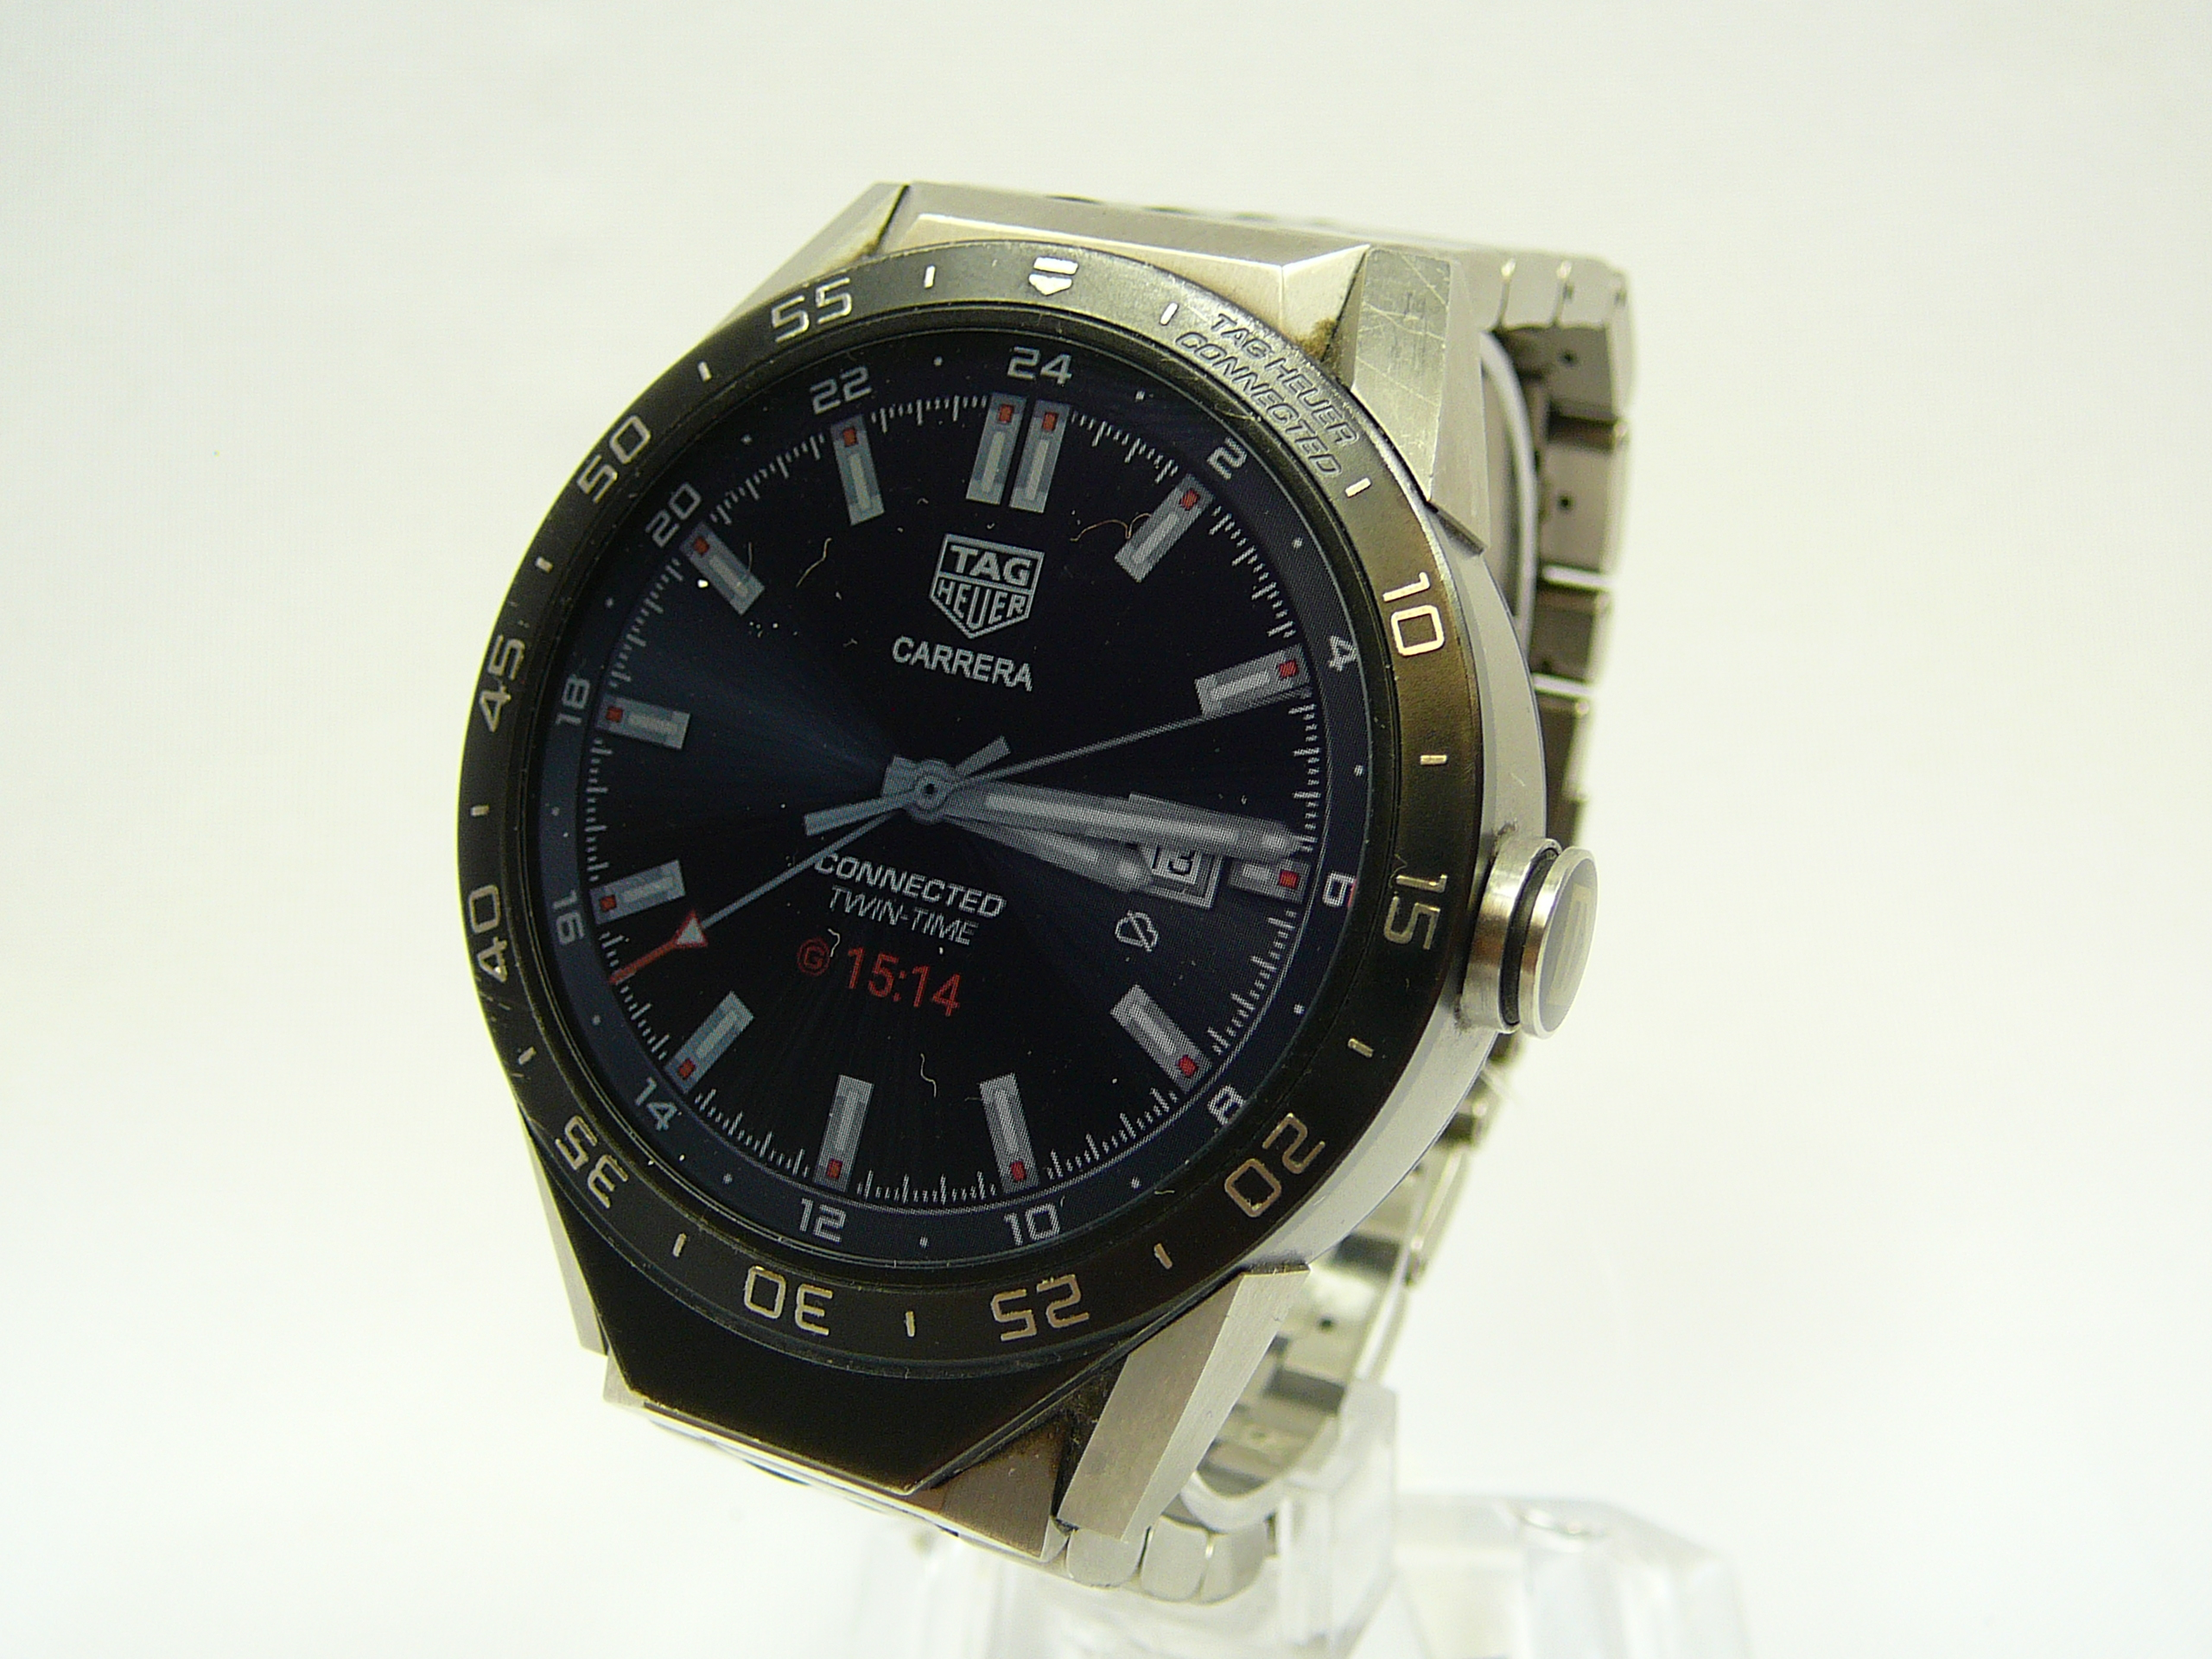 Lot 10 - Gents Tag Heuer Smart Watch